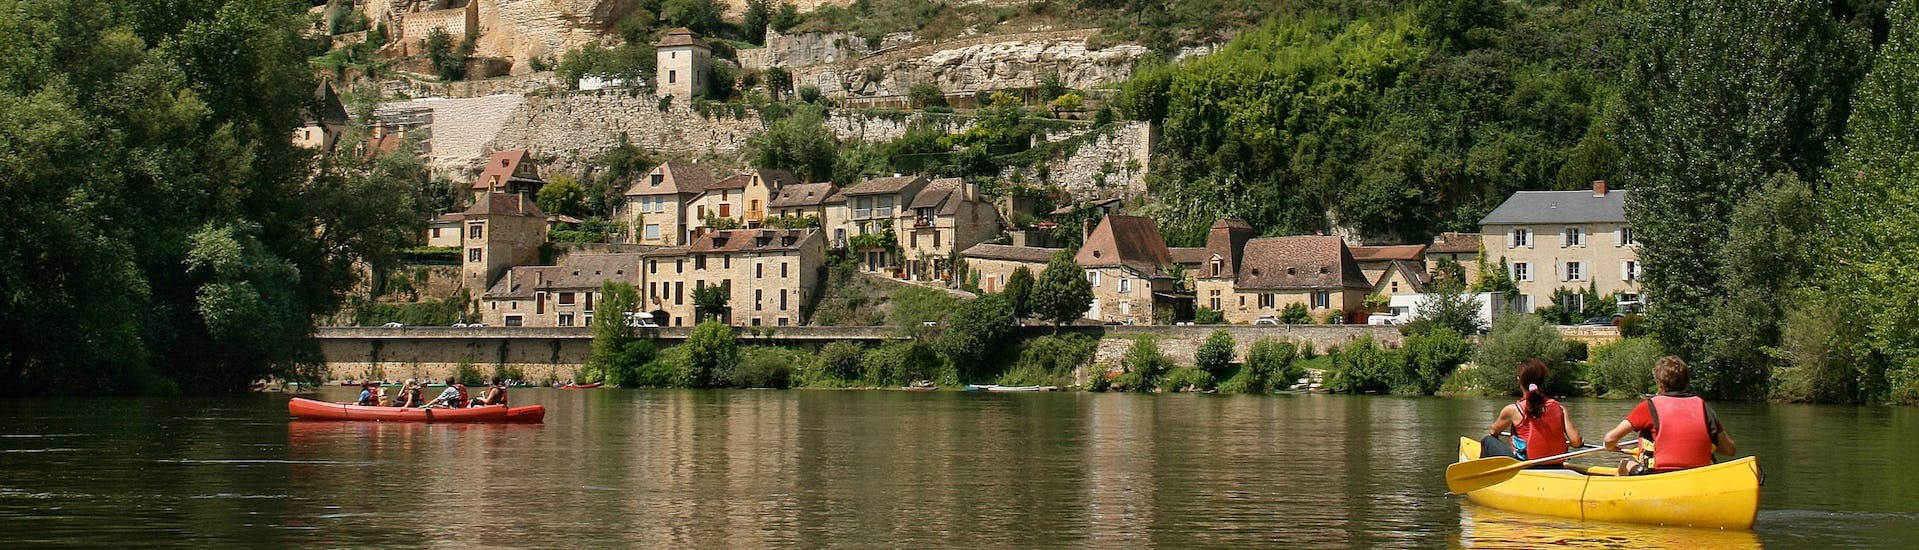 Holidaymakers are taking advantage of their holidays to take a canoe trip on the Dordogne River, and are paddling underneath the Beynac Castle.